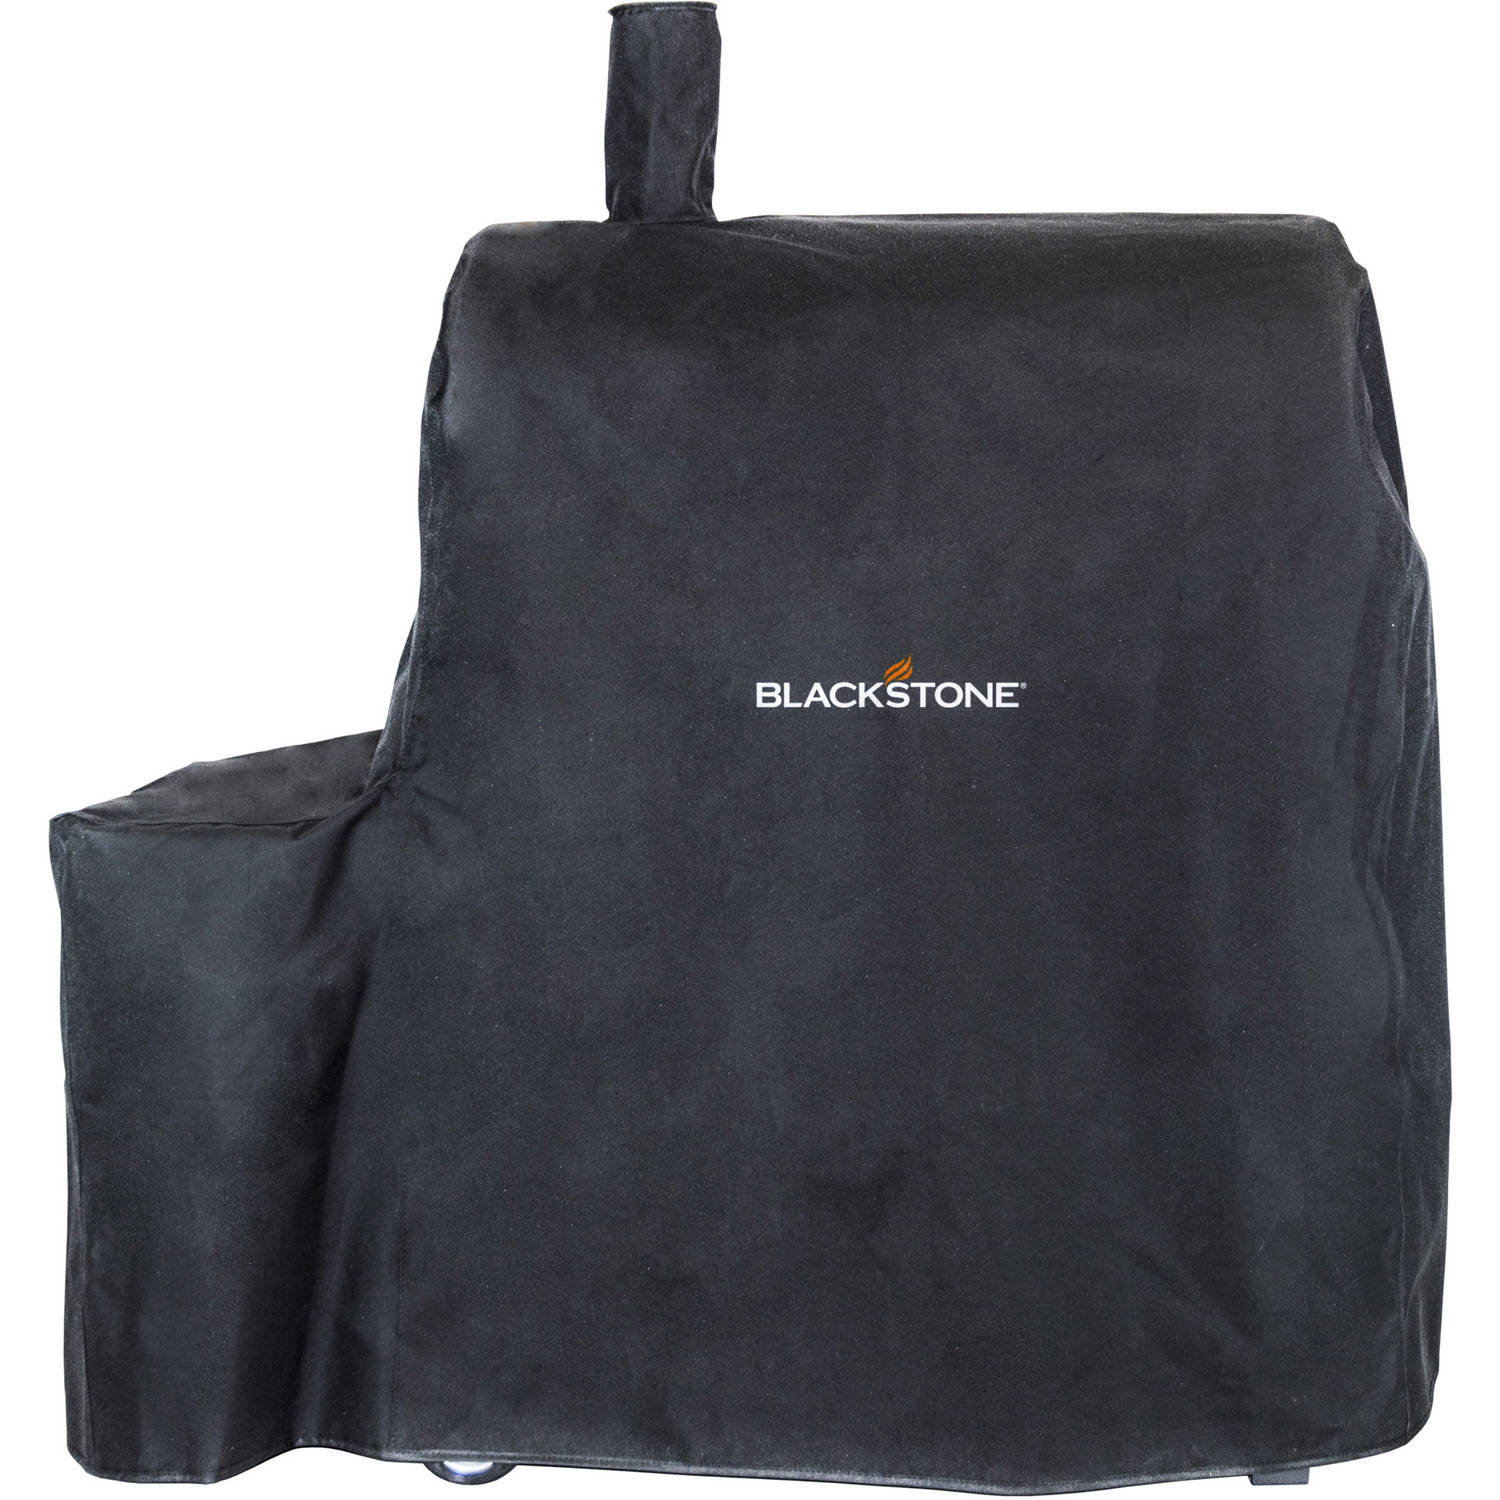 Blackstone Kabob Cover, Black